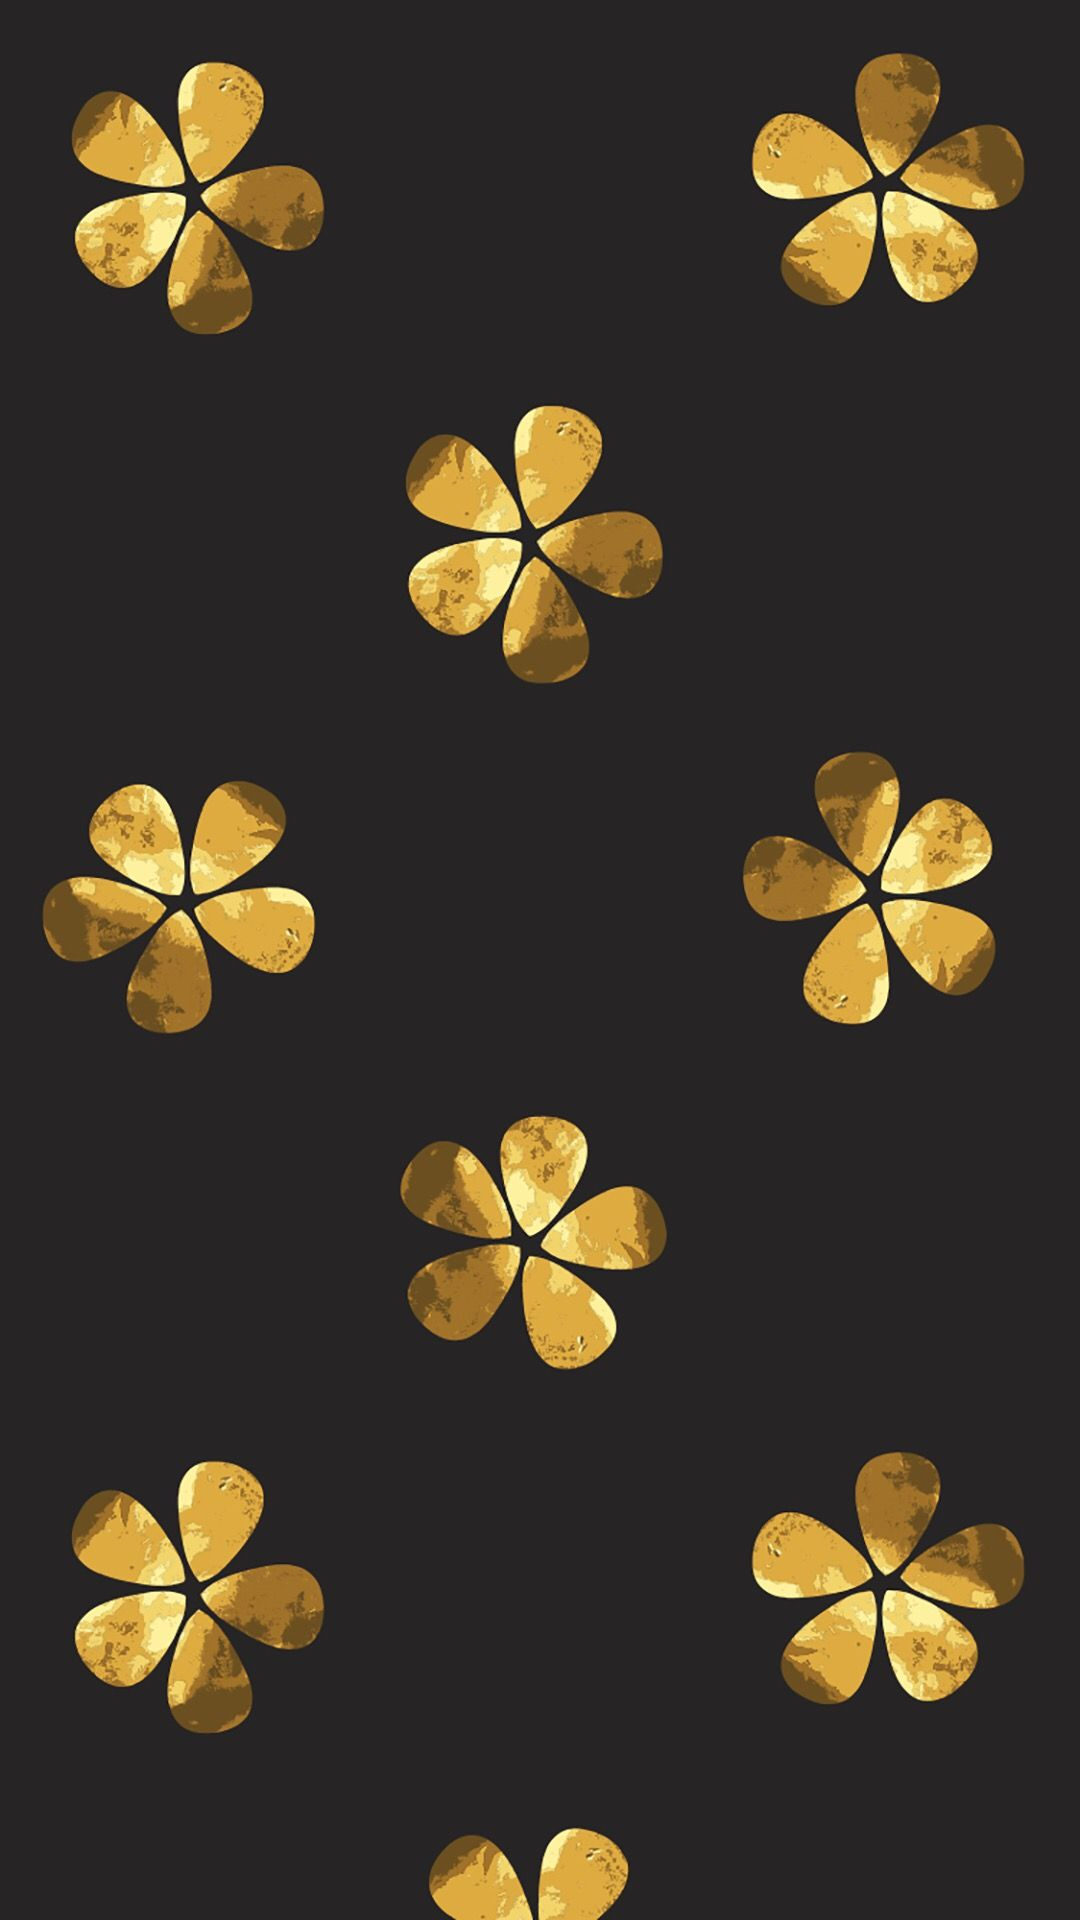 Black And Gold Flowers Yellow Aesthetic Aesthetic Wallpapers Gold Wallpaper